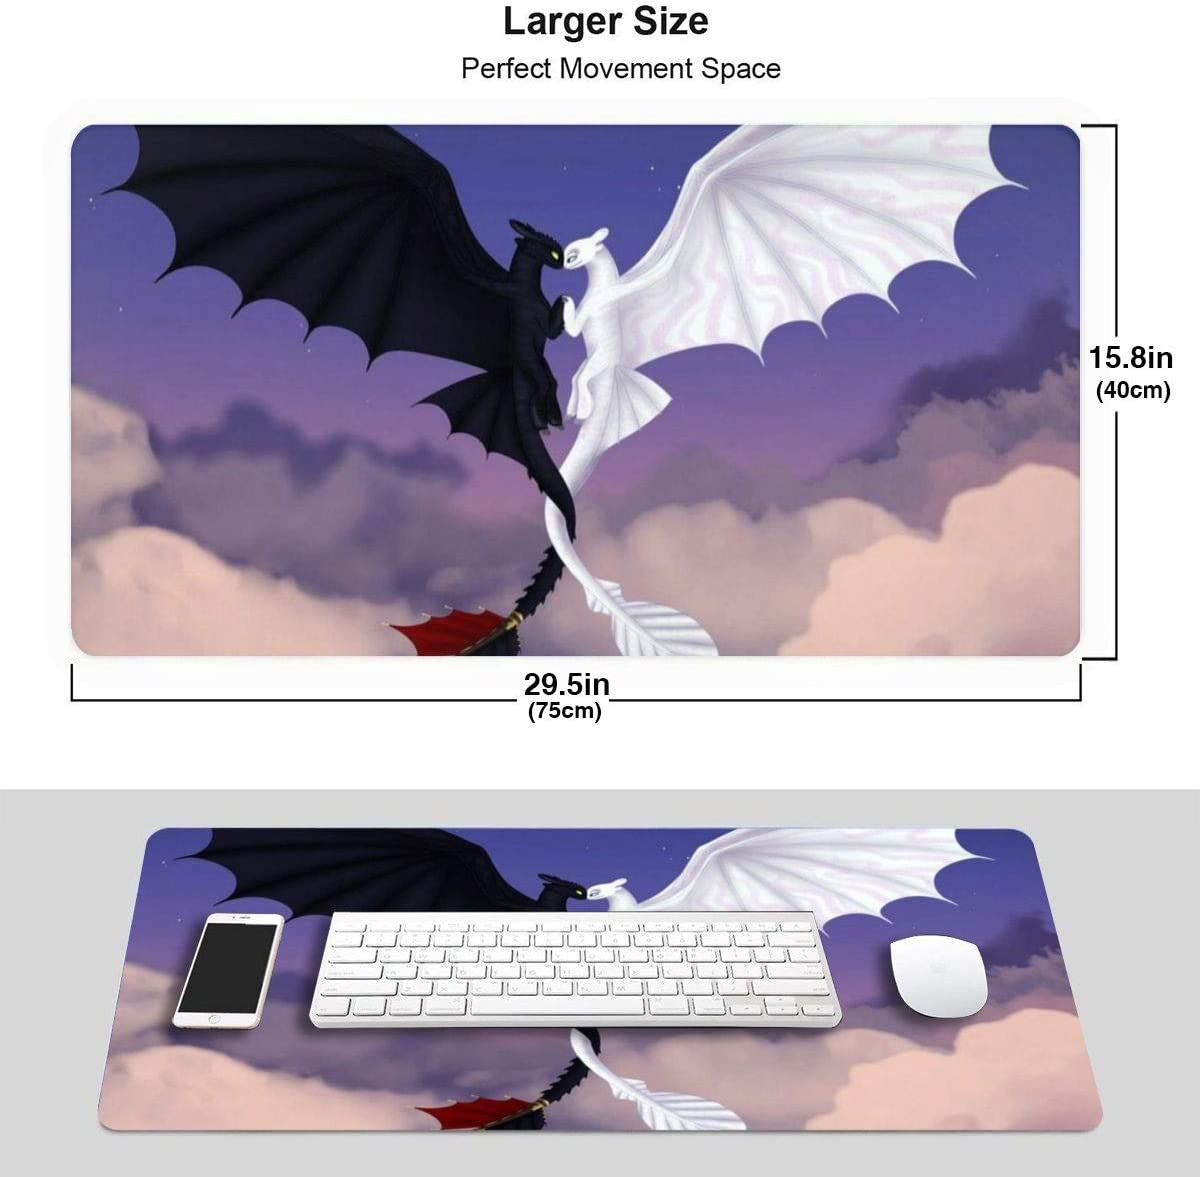 Extended Gaming Mouse Pad with Stitched Edges Desk Pad Keyboard Mat 29.5 X 15.8 Inch How to Train Your Dragon Toothless and Day Fury Large XXL Mousepad with Non-Slip Base